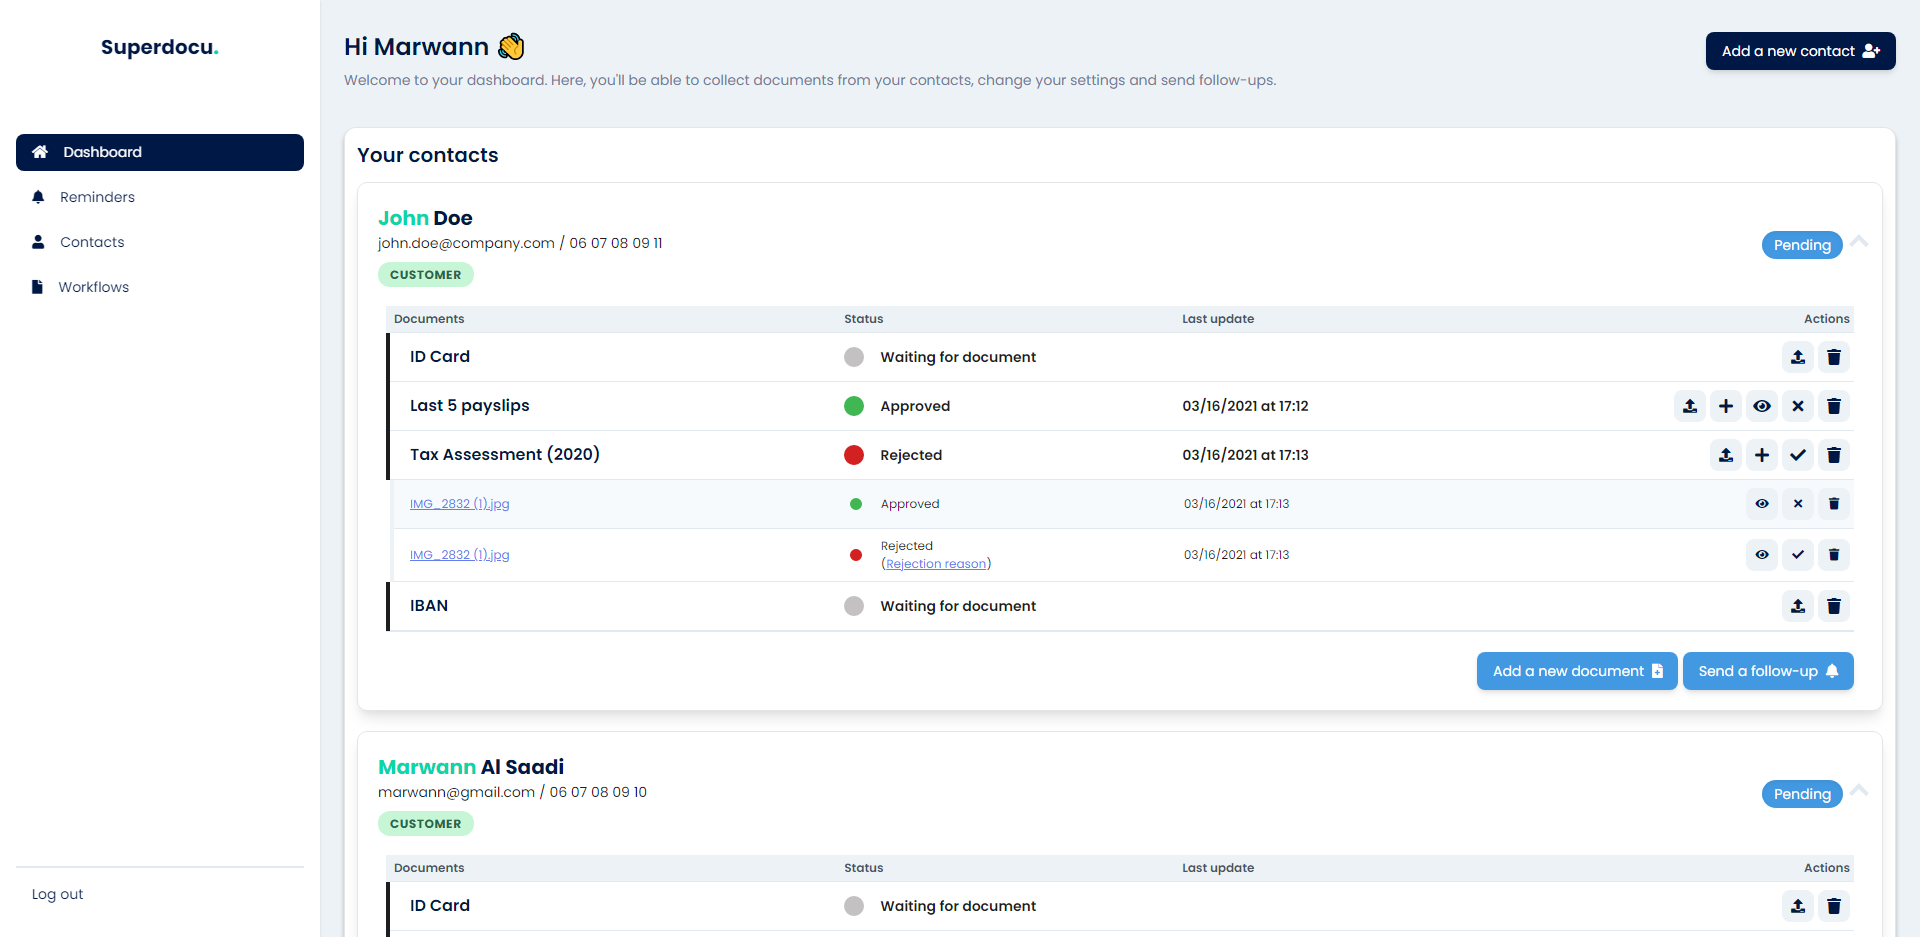 Superdocu dashboard: manage documents, contacts and request workflows in real-time